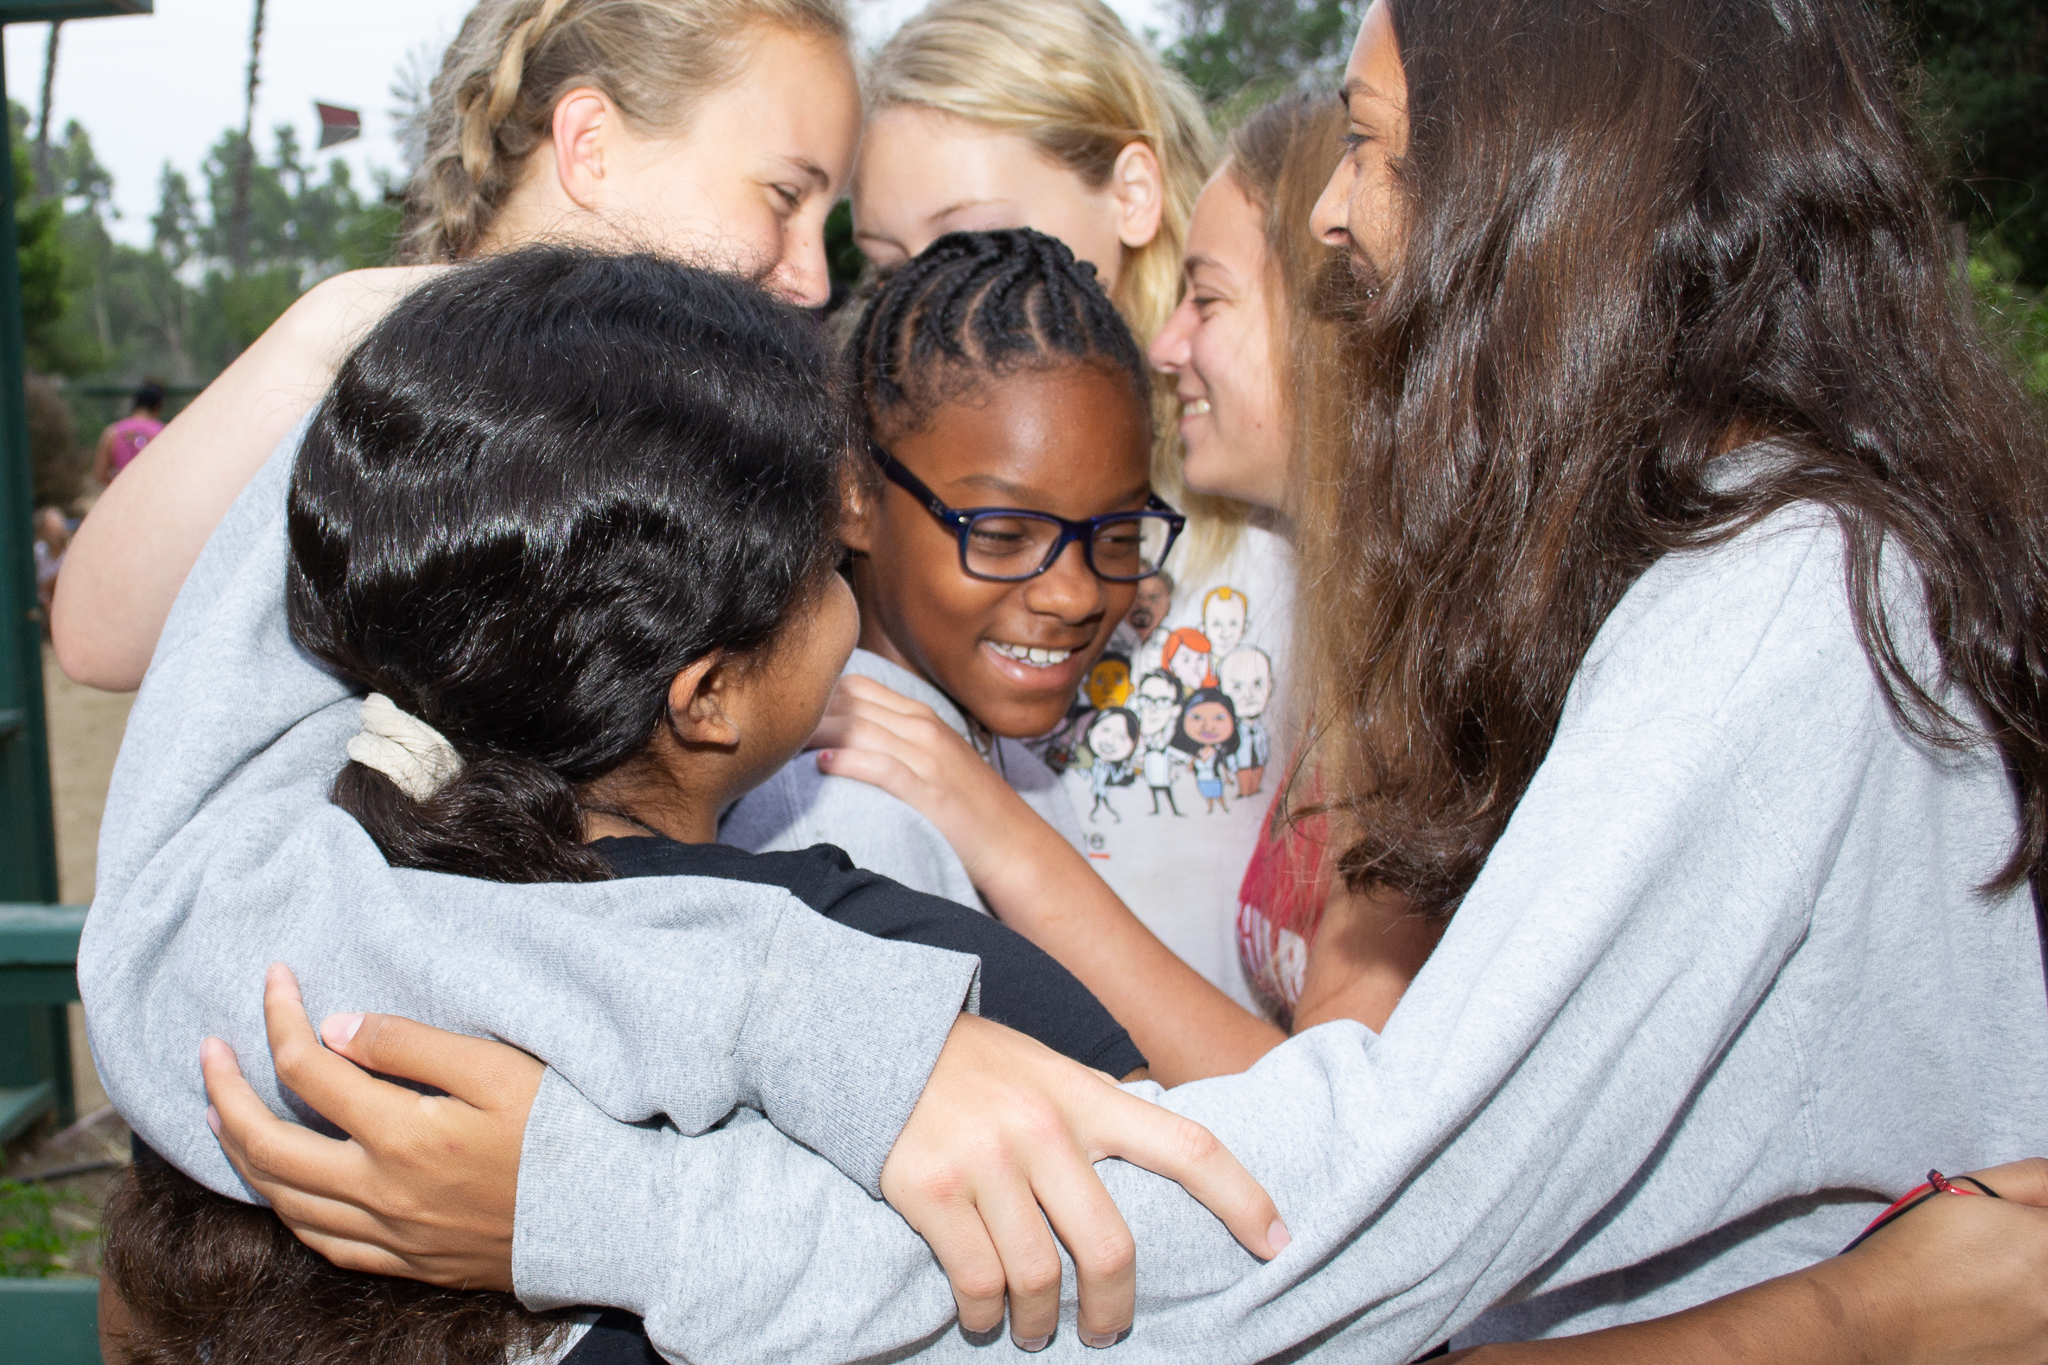 Campers embrace at Experience Camps, before the start of the COVID-19 pandemic.